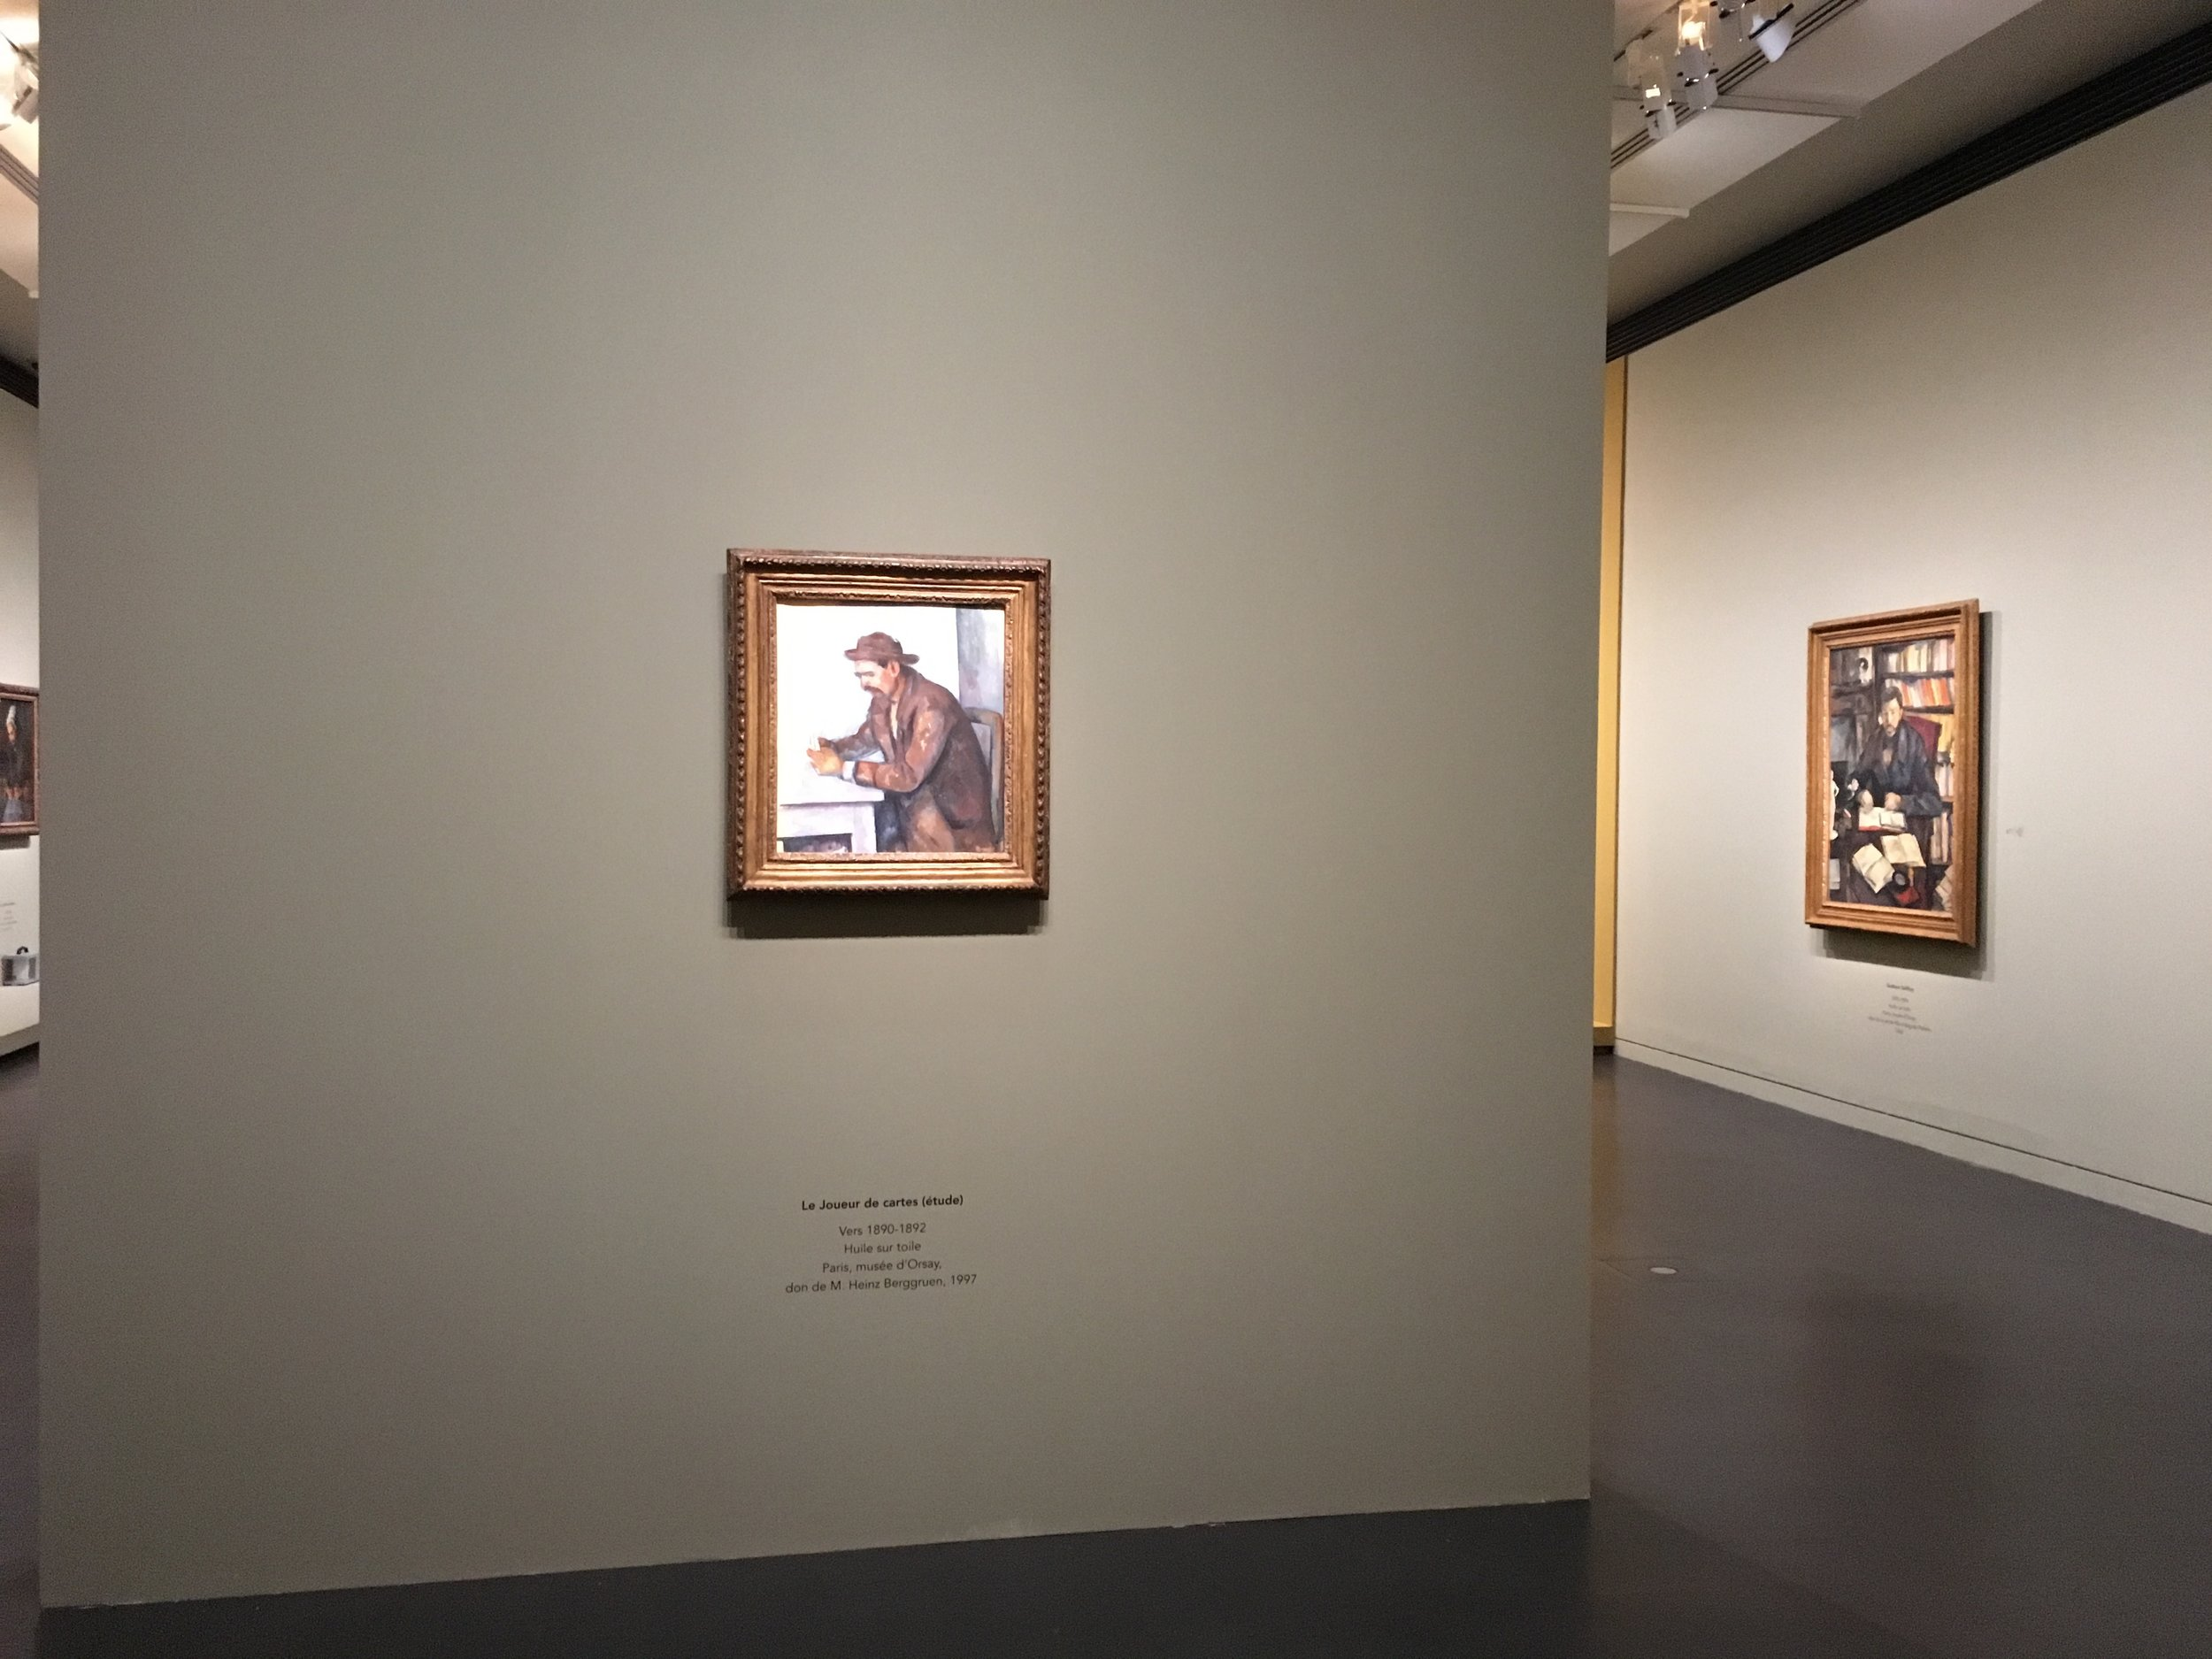 Alice was fortunate to see her painting (on the right wall) in a special Cezanne portraiture exhibition.